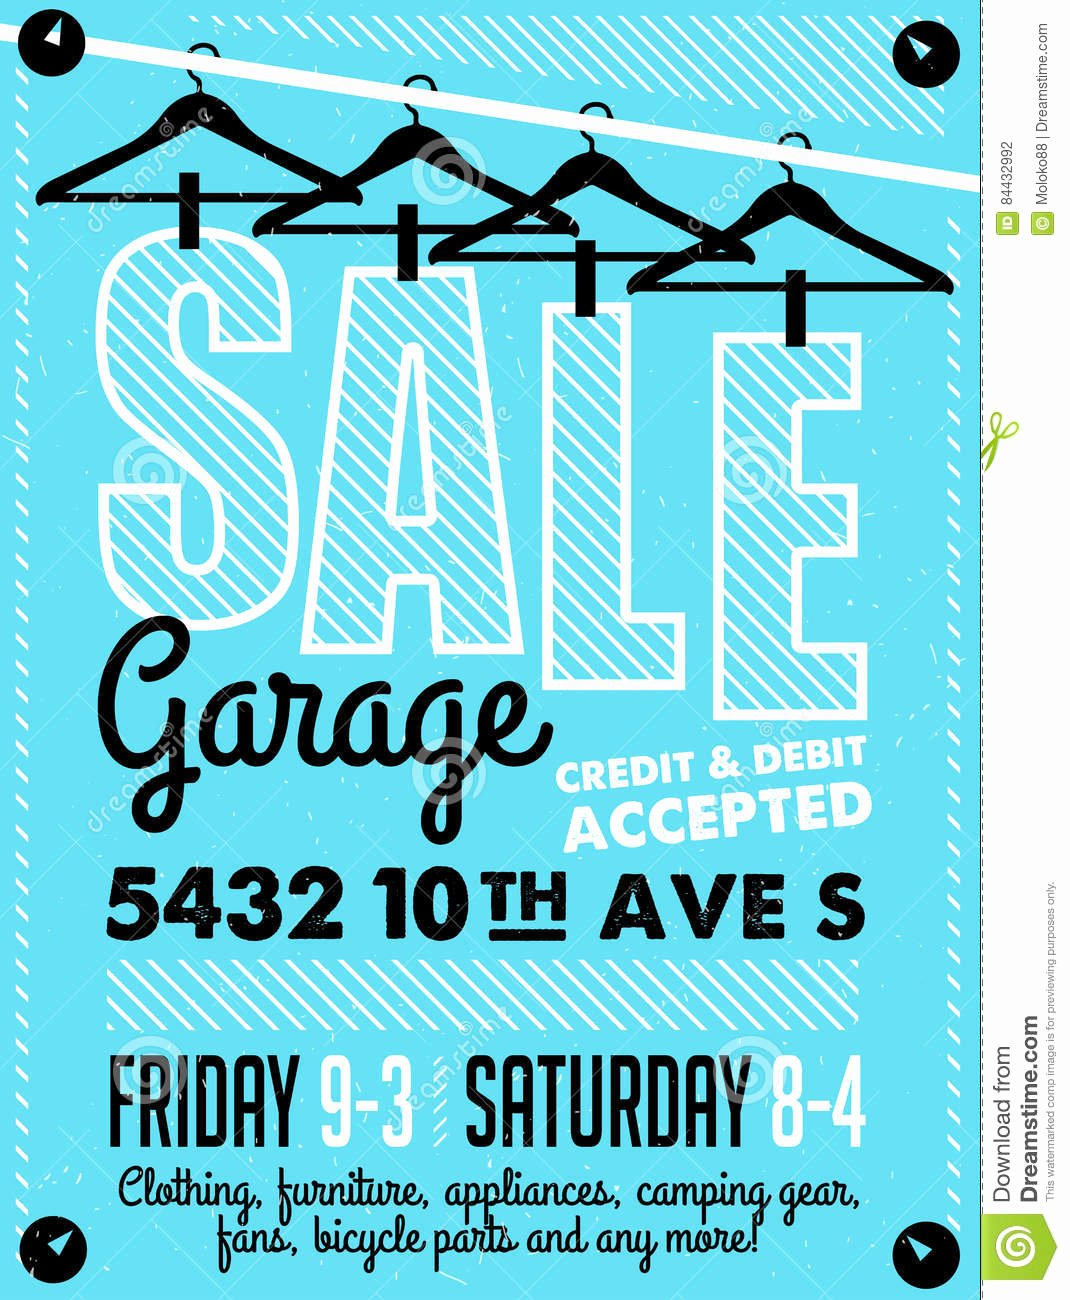 Garage Sale Sign Template Awesome Garage Sale Poster Vector Illustration